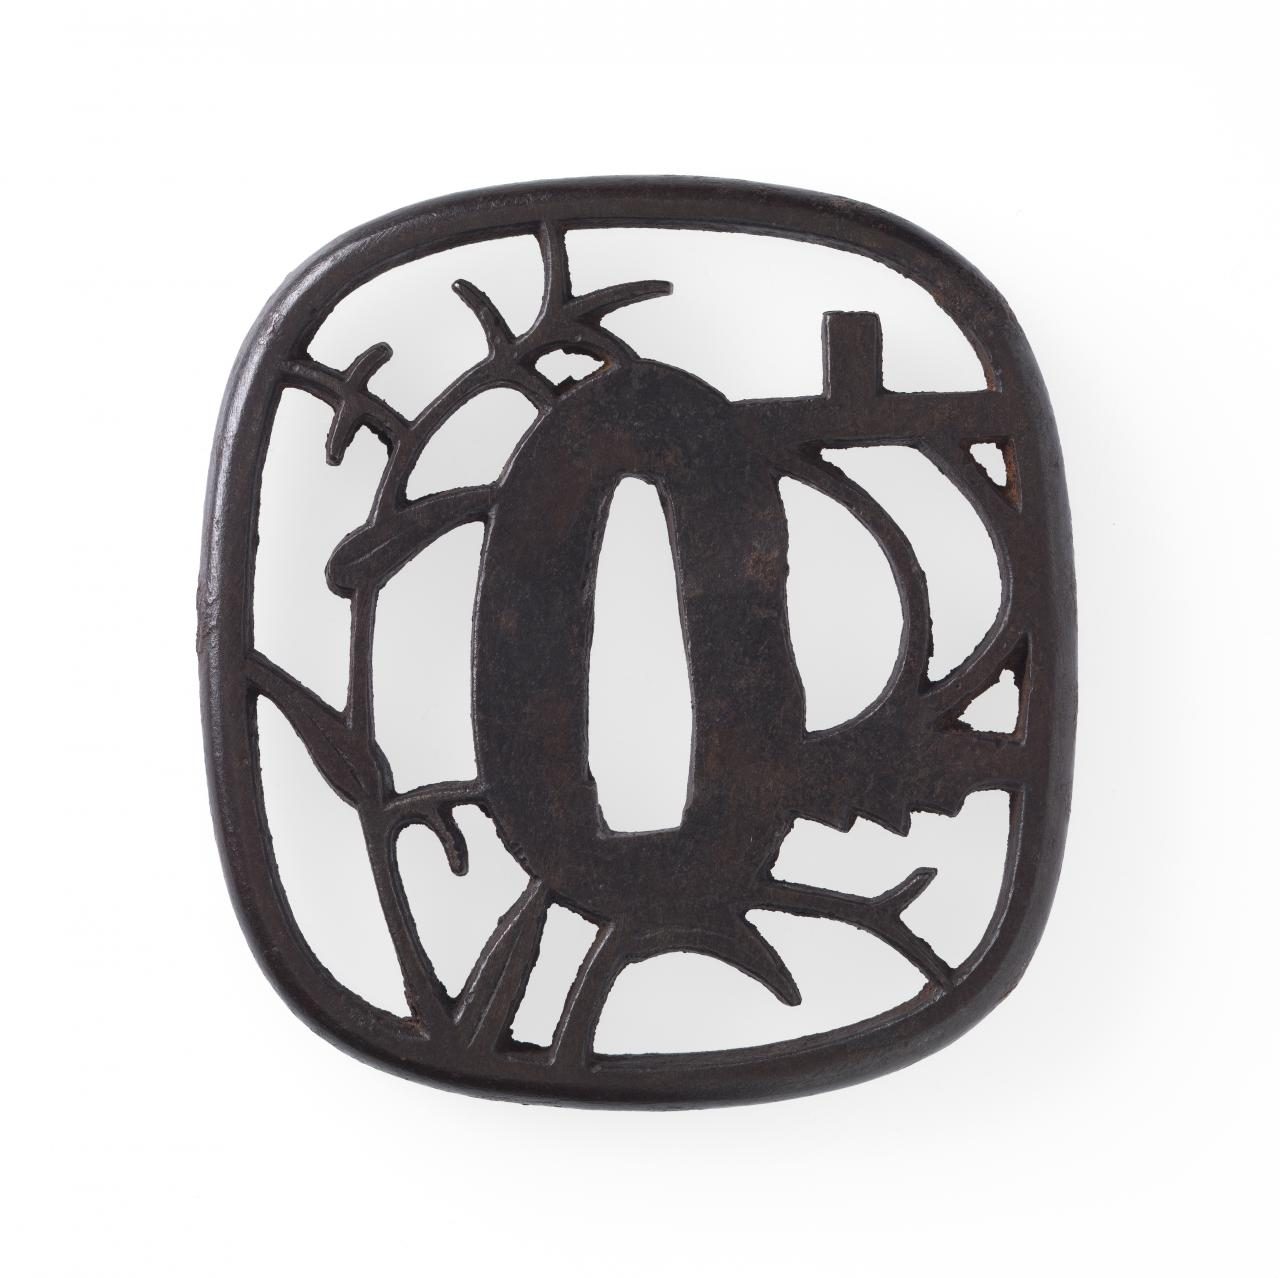 Sword guard with river boat sail design